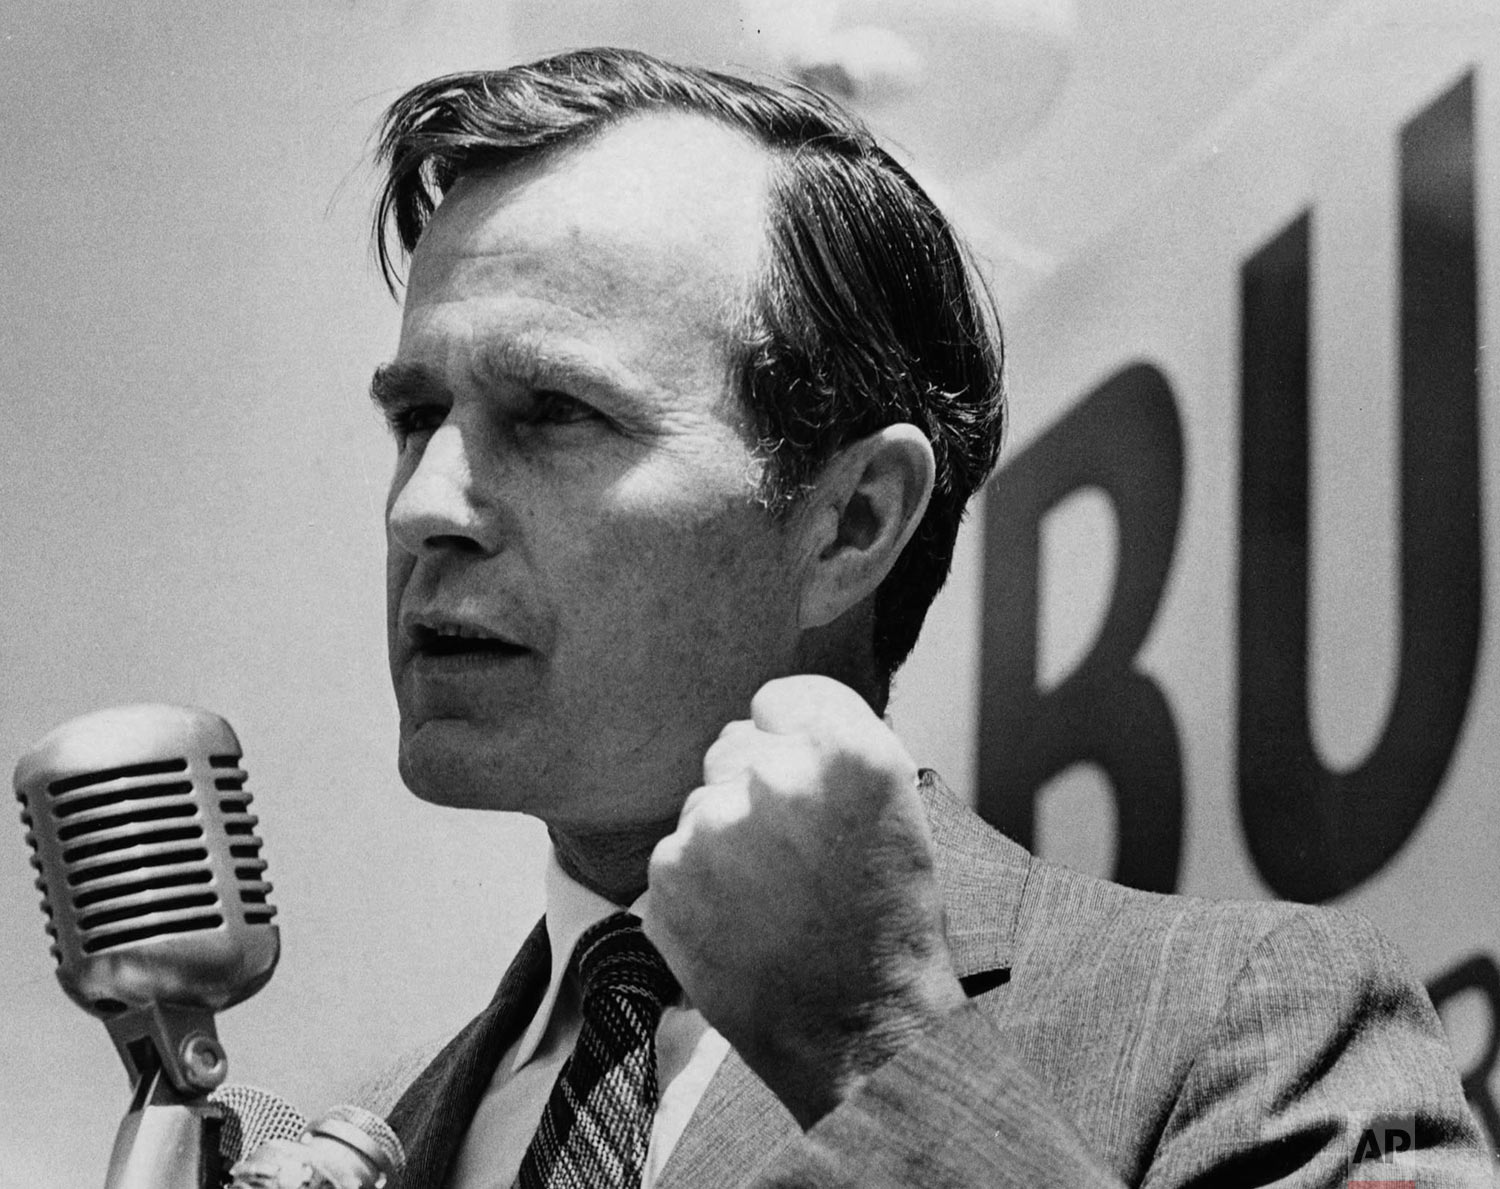 George H.W. Bush speaks at the opening of his Harris County campaign headquarters as he campaigns for in the U.S. Senate Race, April 2, 1970 in Texas. (Sam C. Pierson Jr./Houston Chronicle via AP)